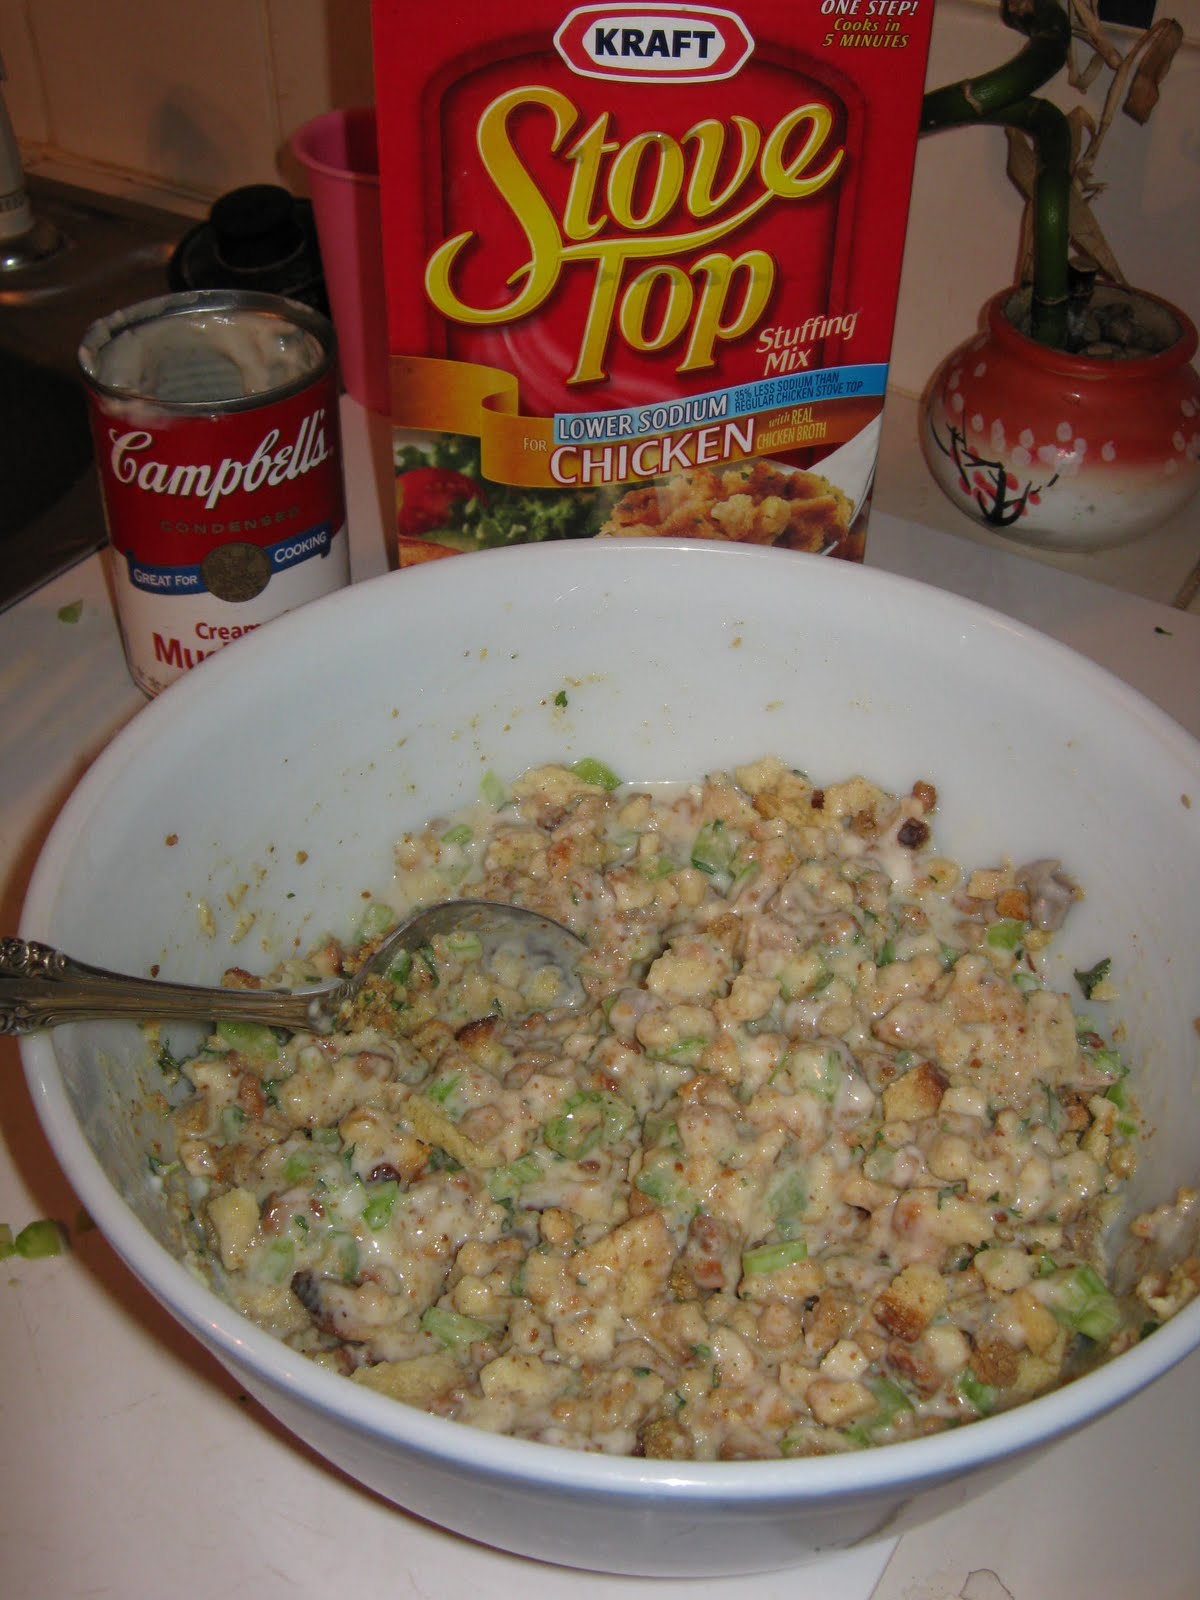 Baked Swiss Chicken and Stuffing